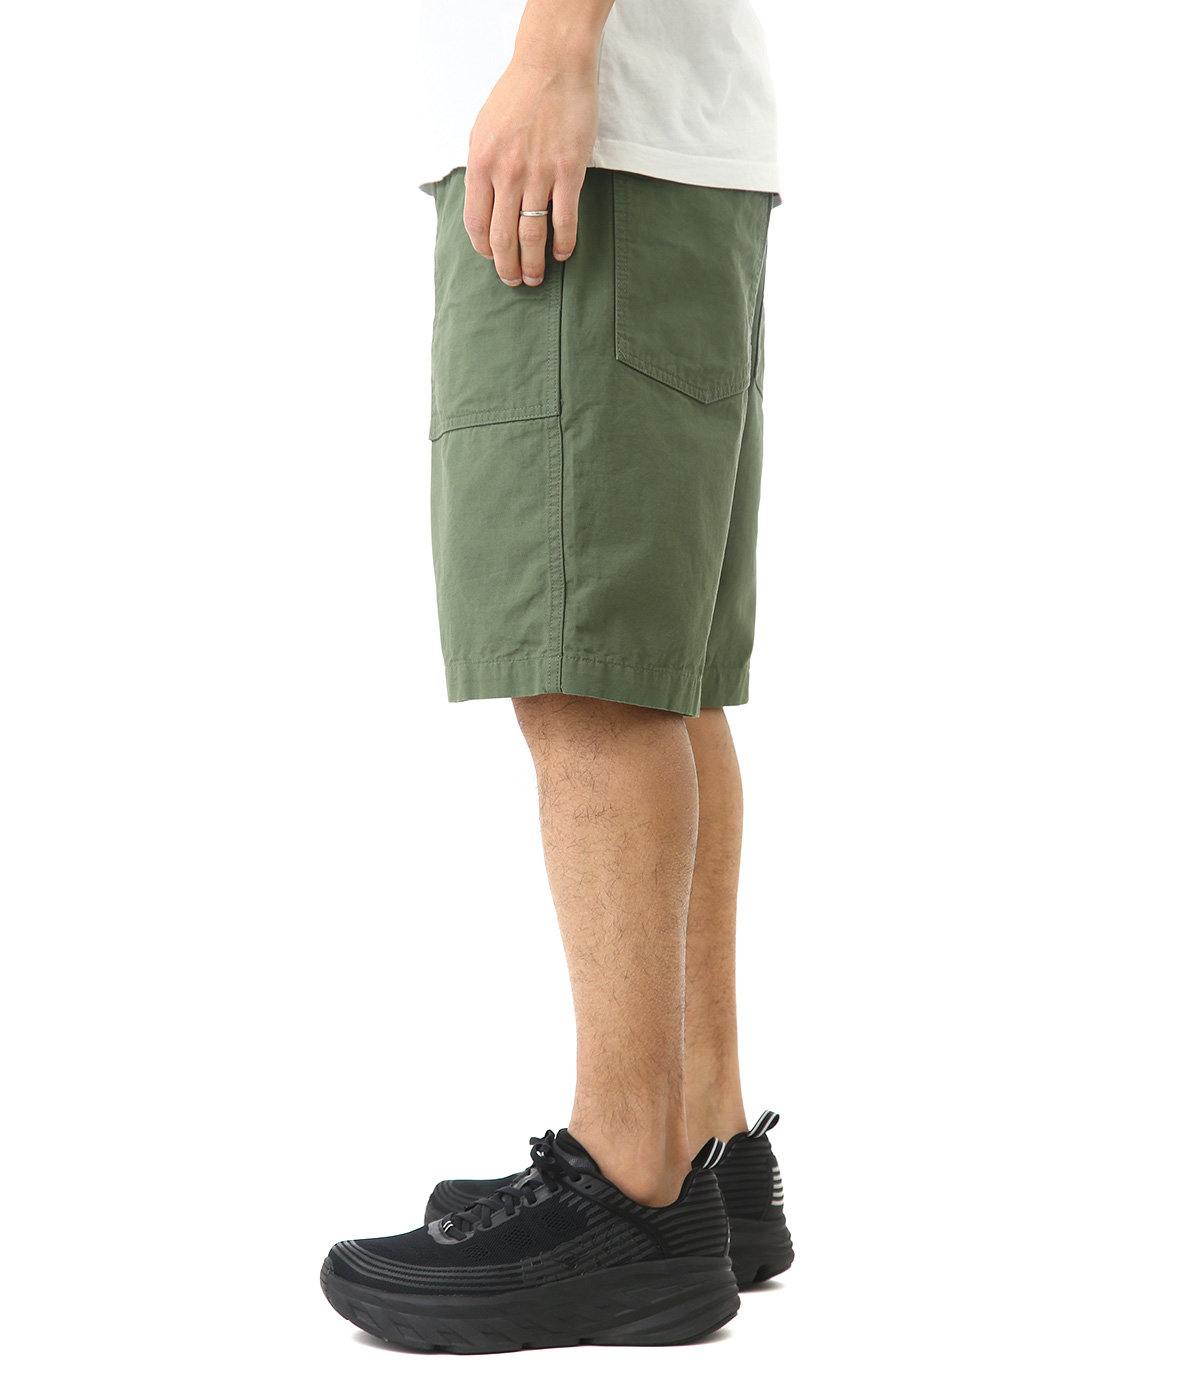 Fatigue Short - Cotton Ripstop